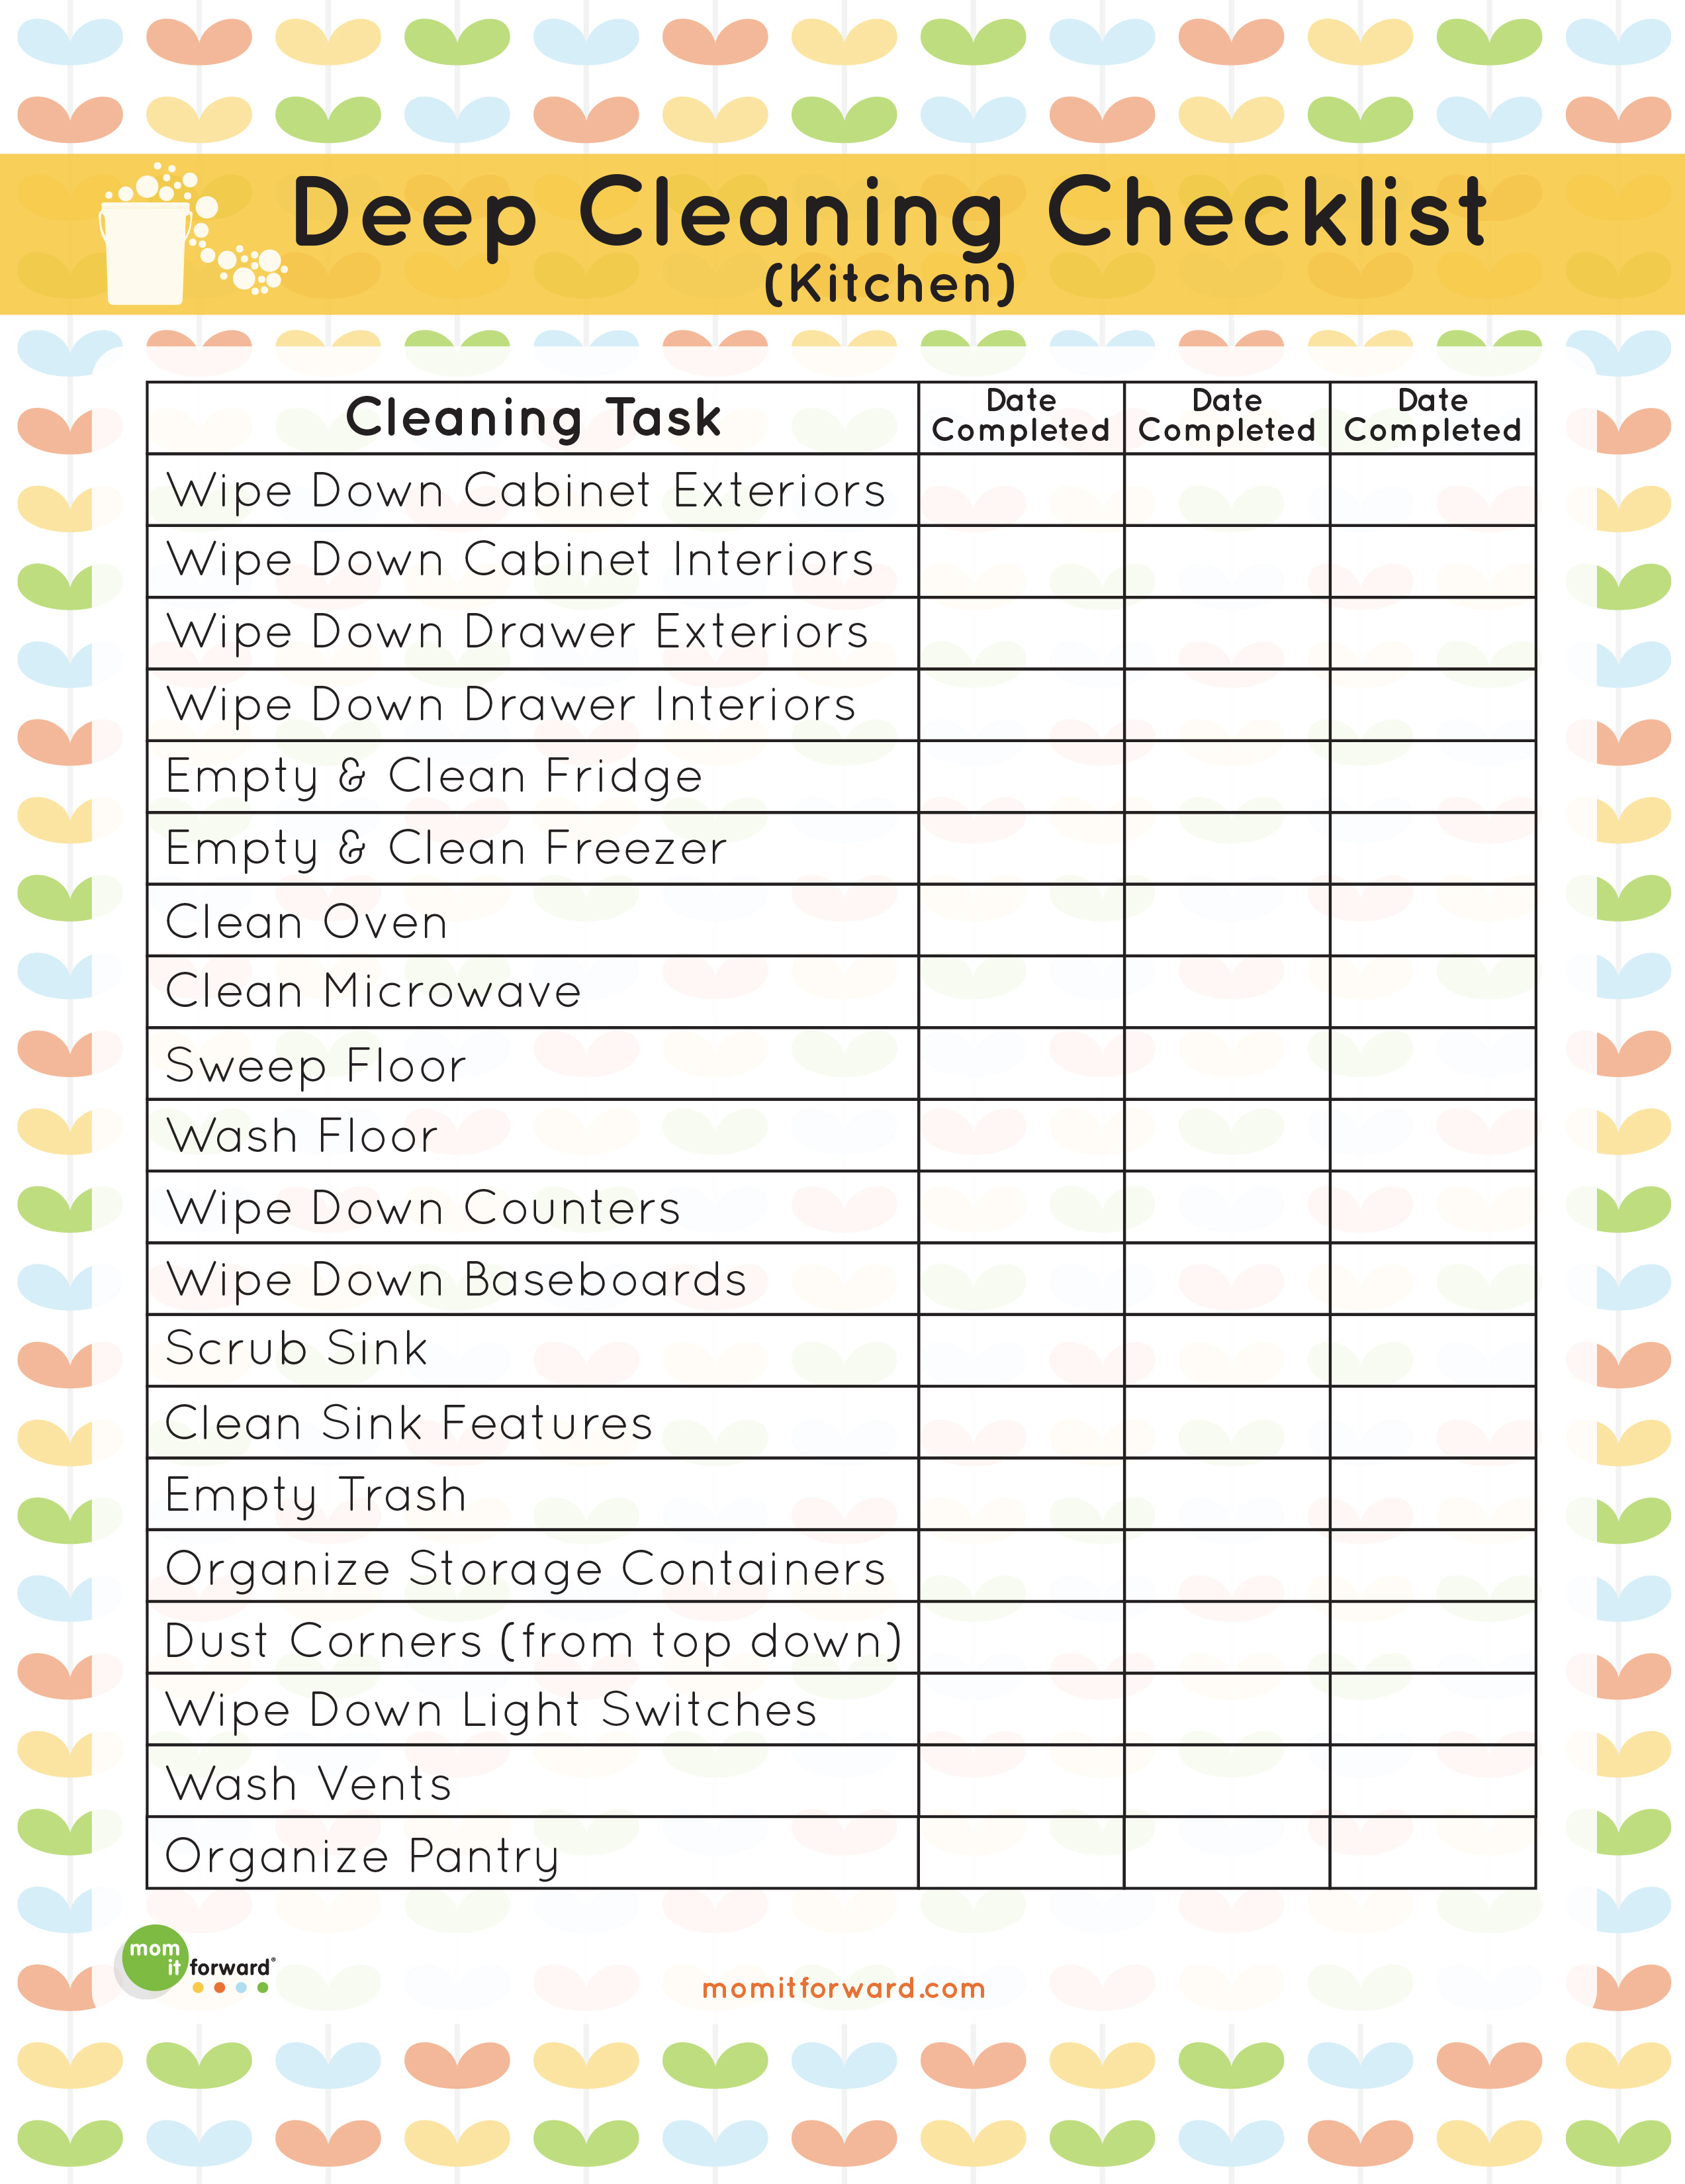 8 Images of Deep Cleaning Checklist Printable